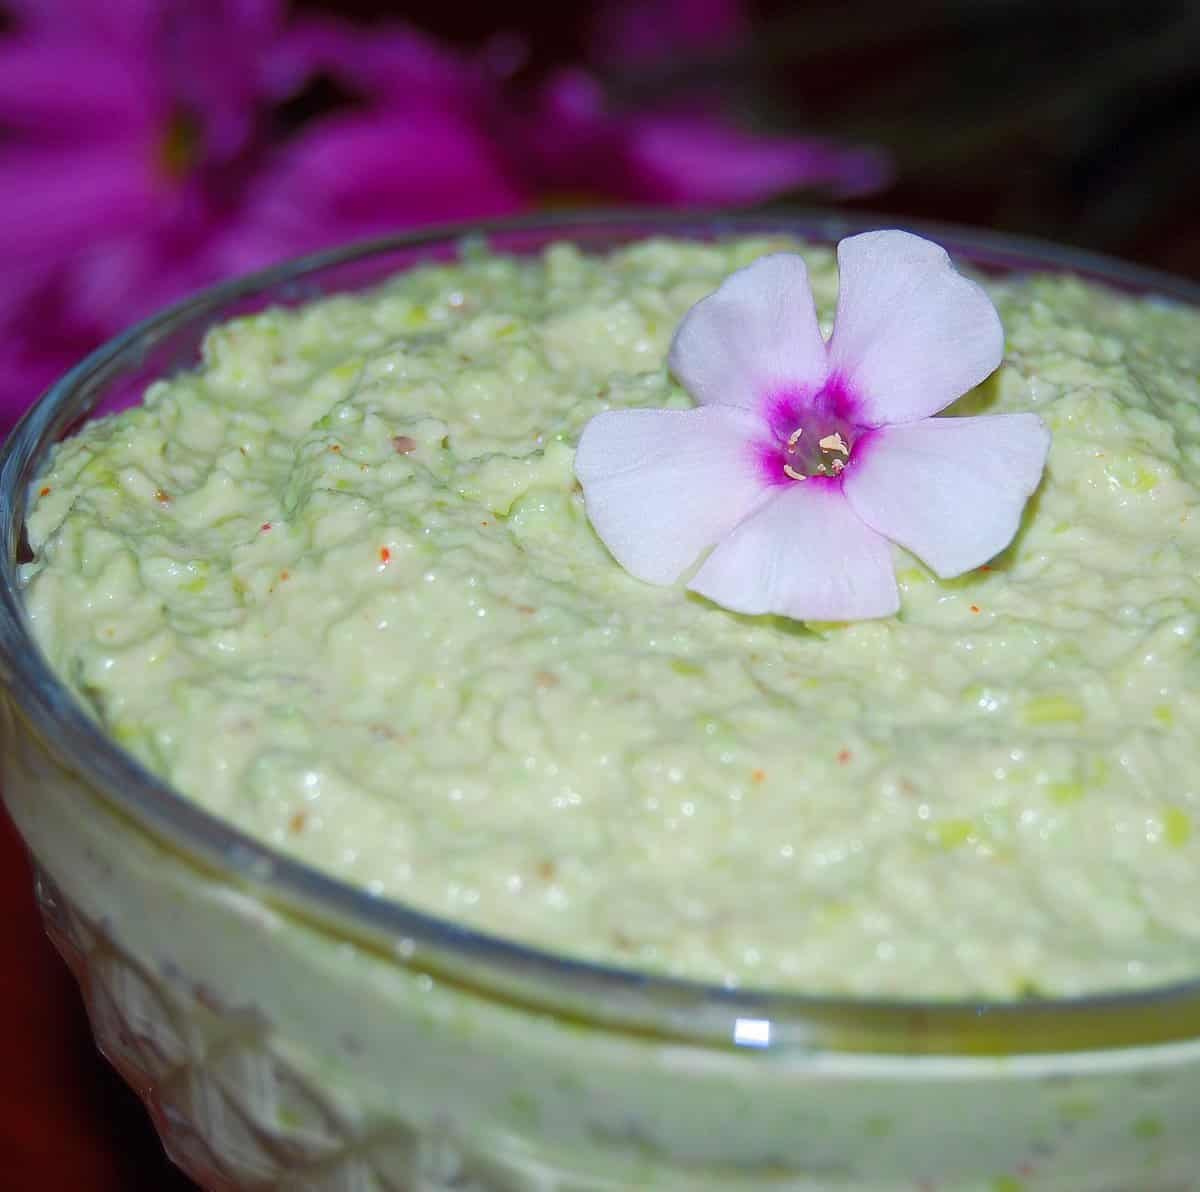 Edamame Hummus in a bowl with a pink flower